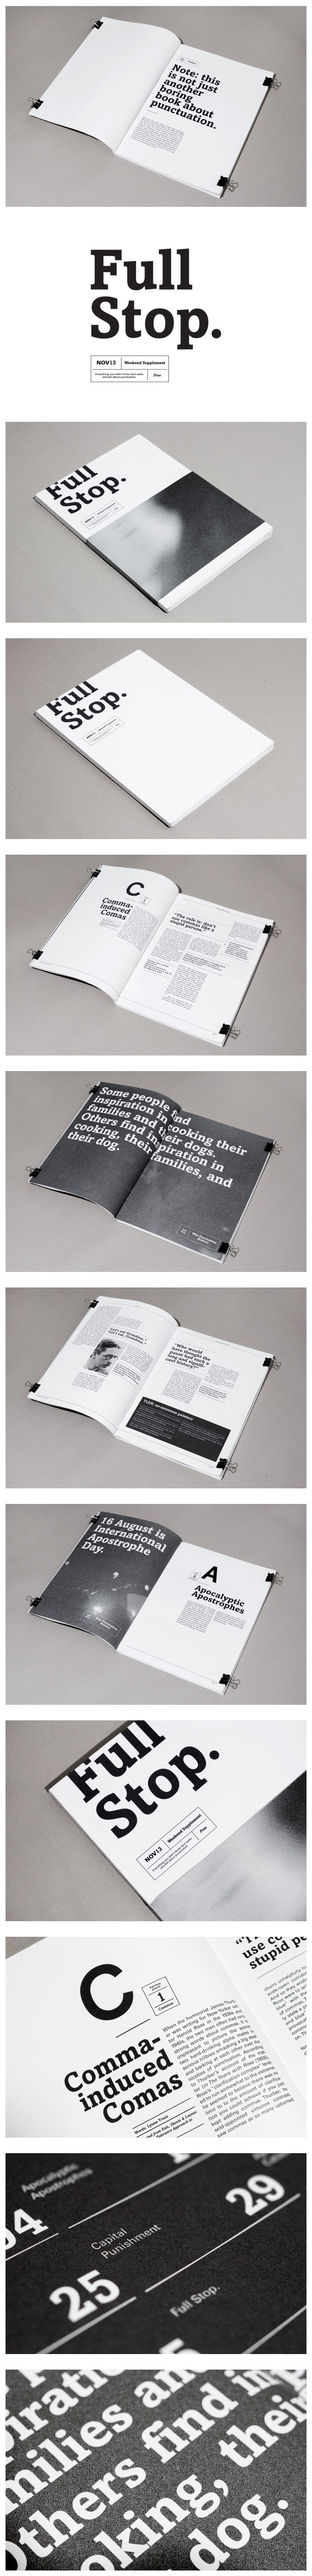 Editorial Design by Sidney Lim